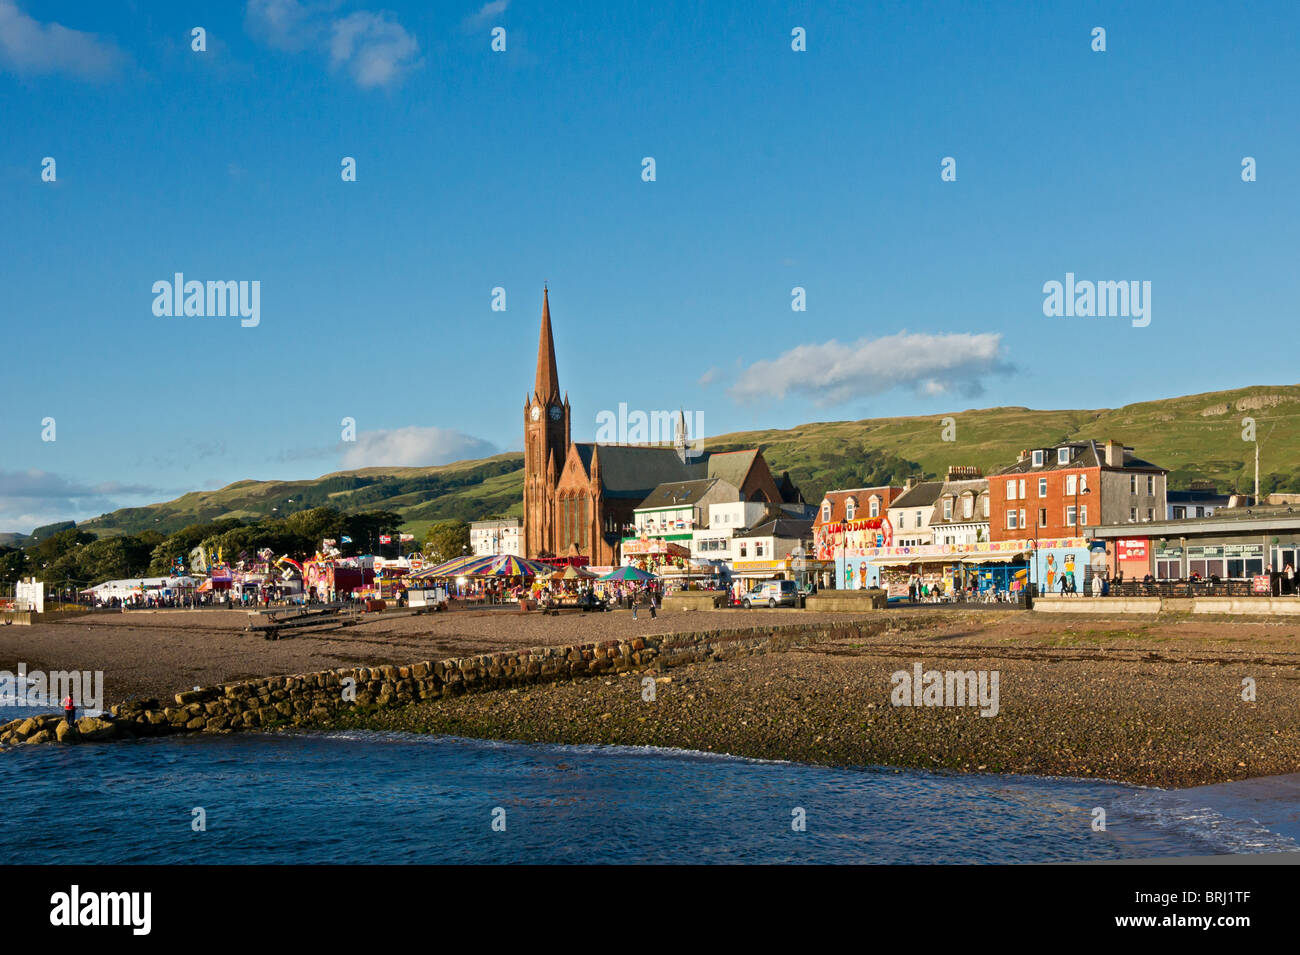 Sea frontage of seaside resort Largs in North Ayrshire Scotland in early evening light - Stock Image